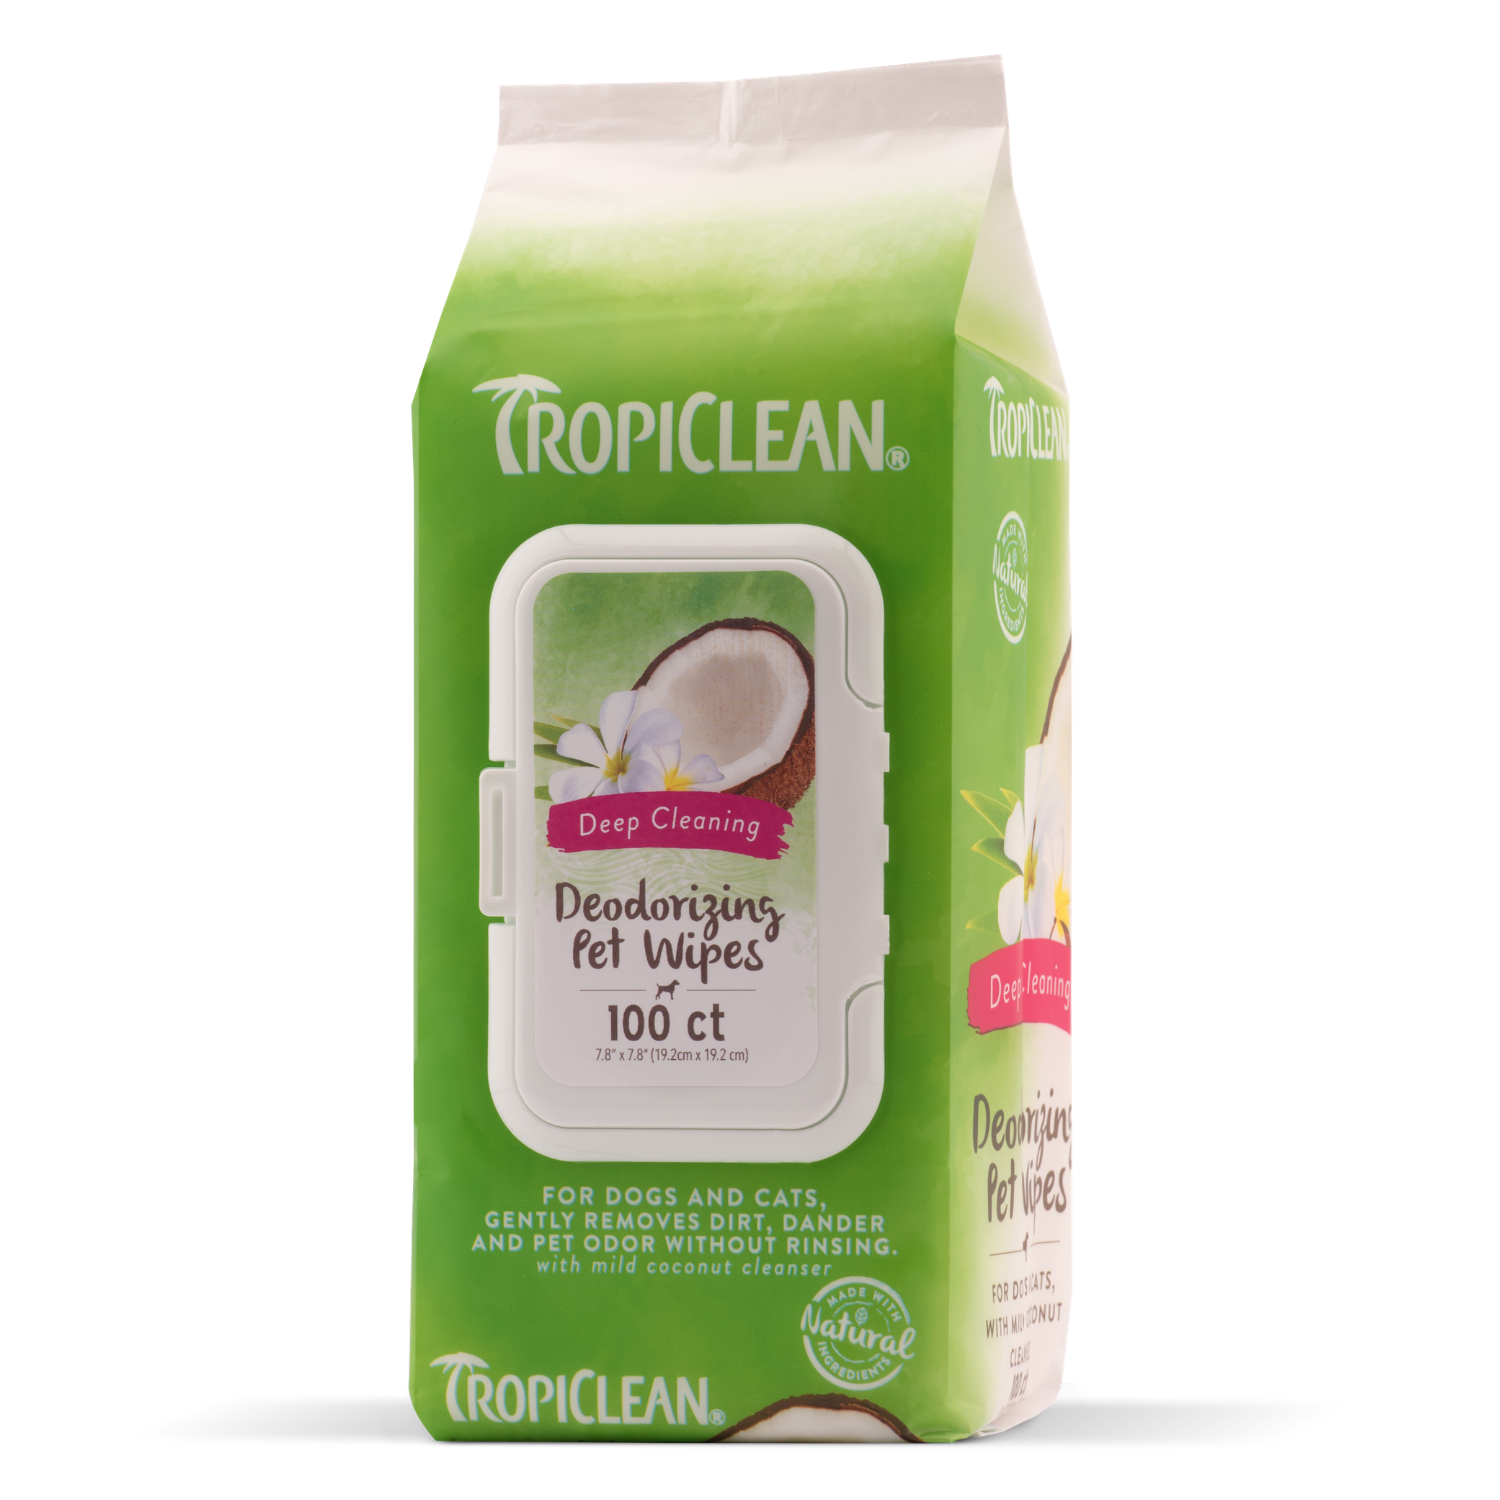 Tropiclean Deep Cleaning Pet Wipes - 100pcs